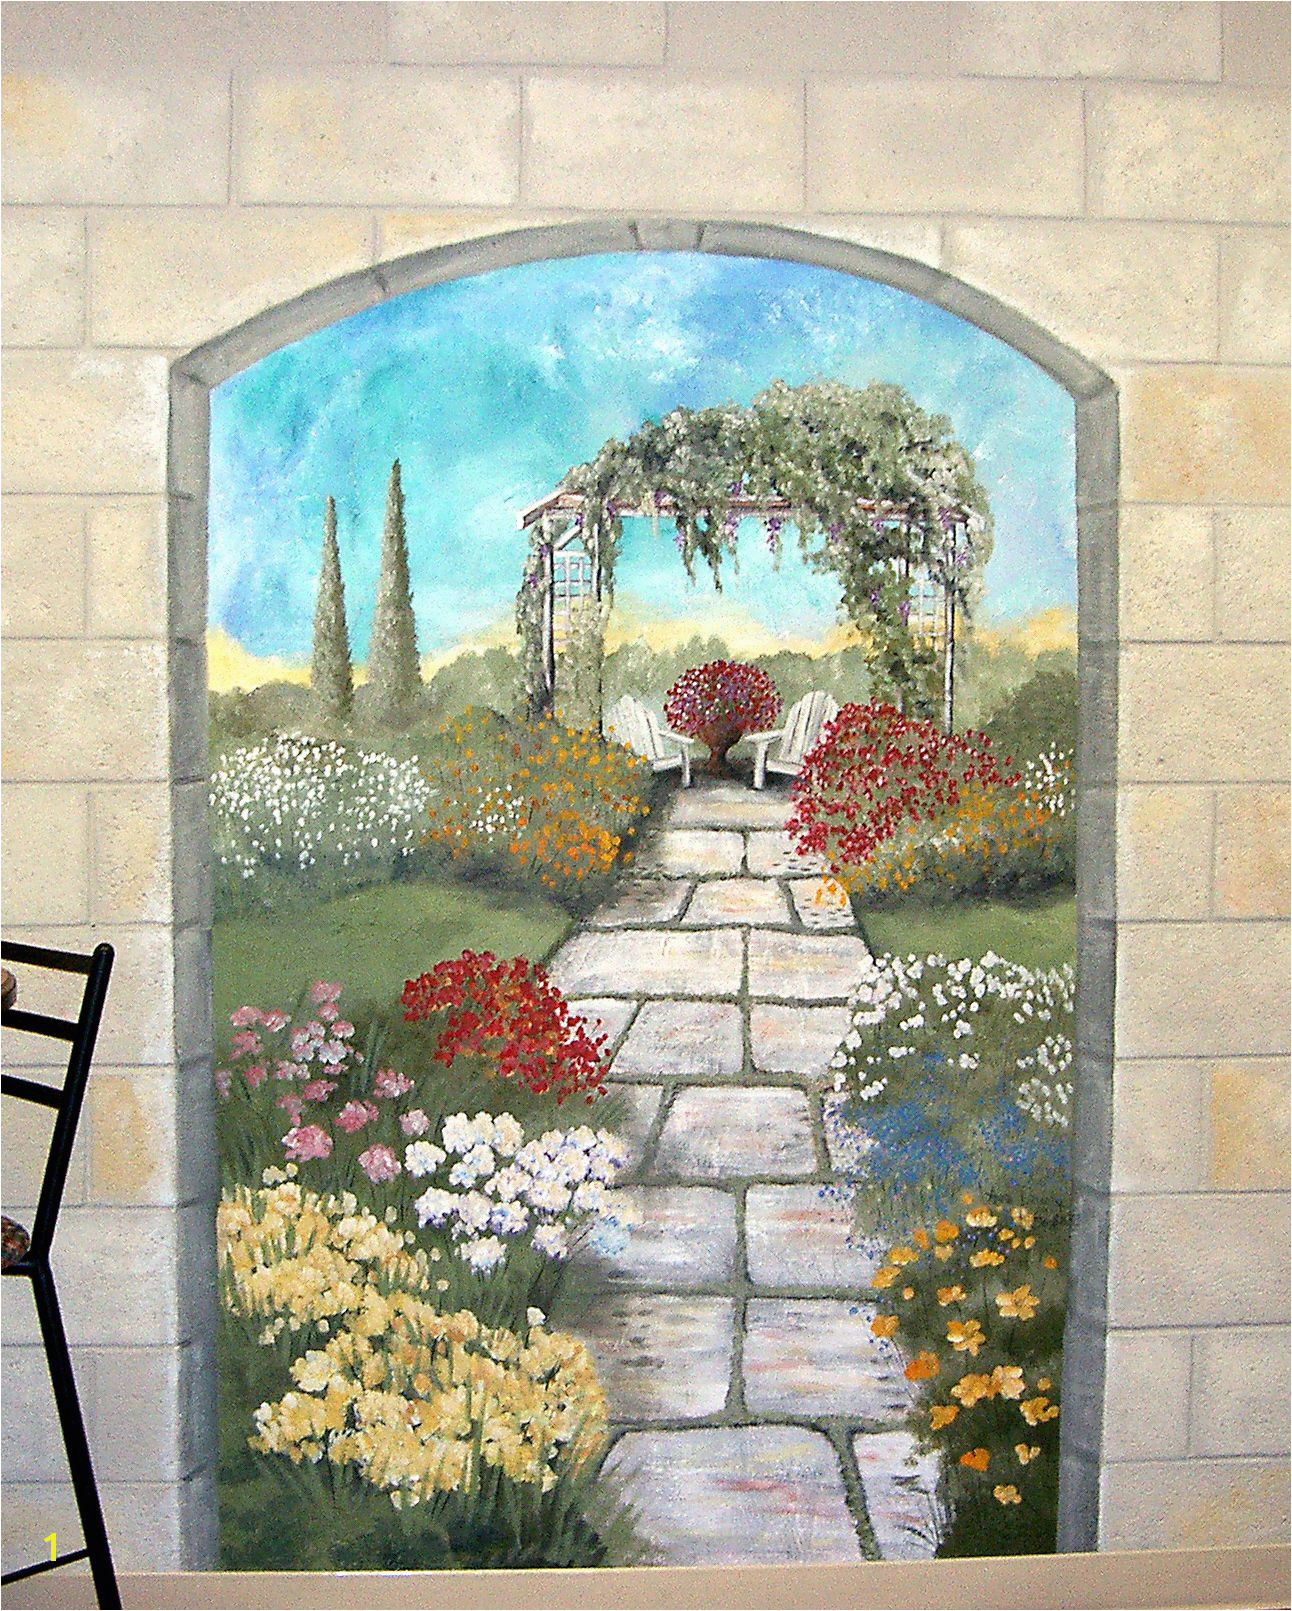 Wall Murals Tuscan Scenes Garden Mural On A Cement Block Wall Colorful Flower Garden Mural